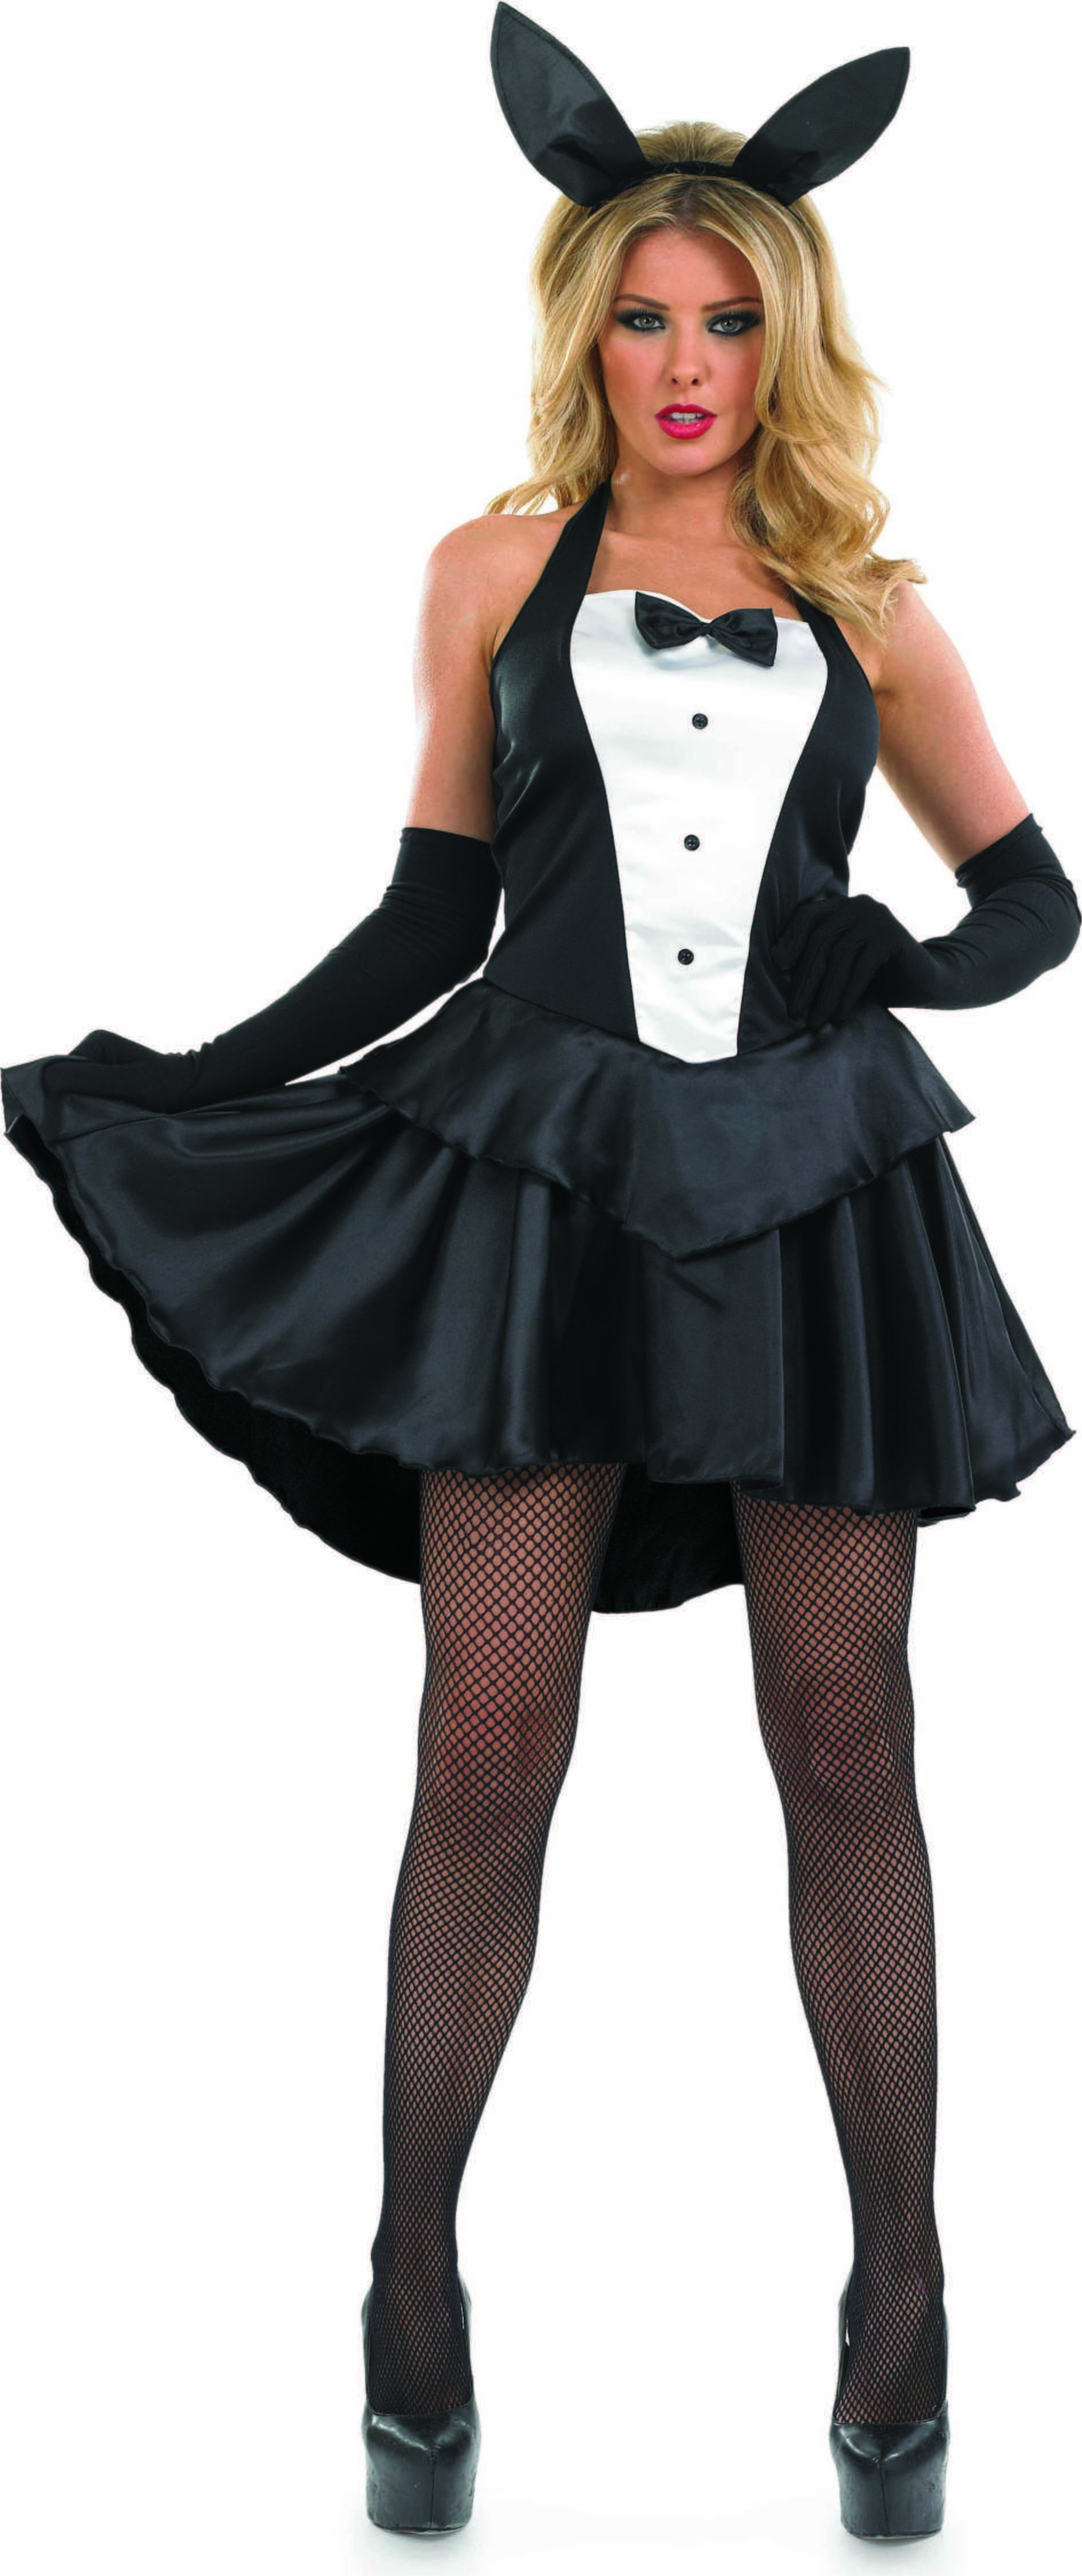 Ladies Bunny Girl Animal Outfit - (Black, White)